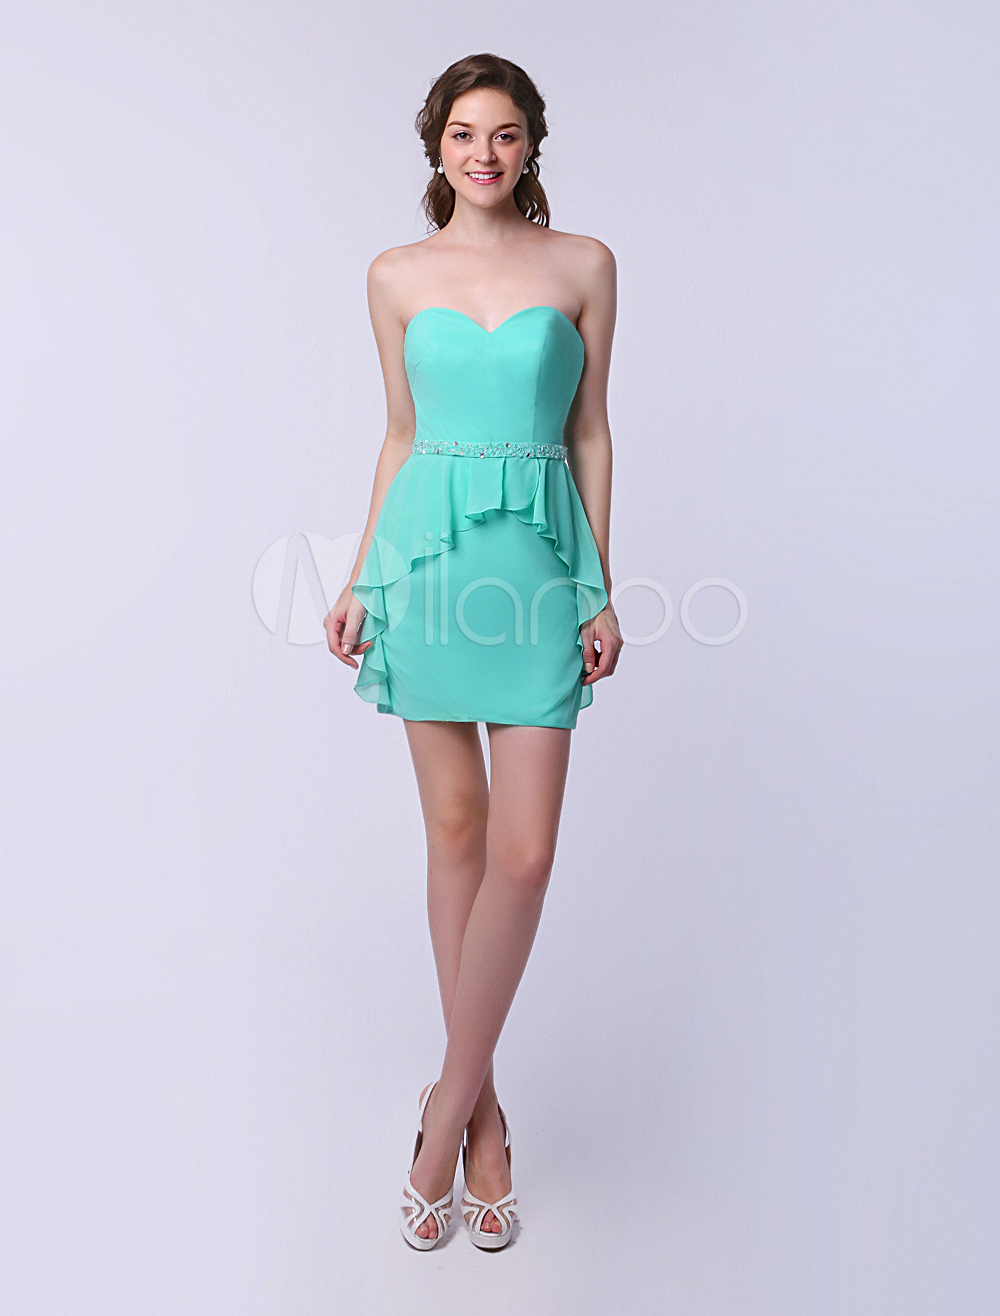 Sweetheart Bridesmaid Dress Peplum Mint Green Sheath Chiffon Wedding Party Dress Milanoo